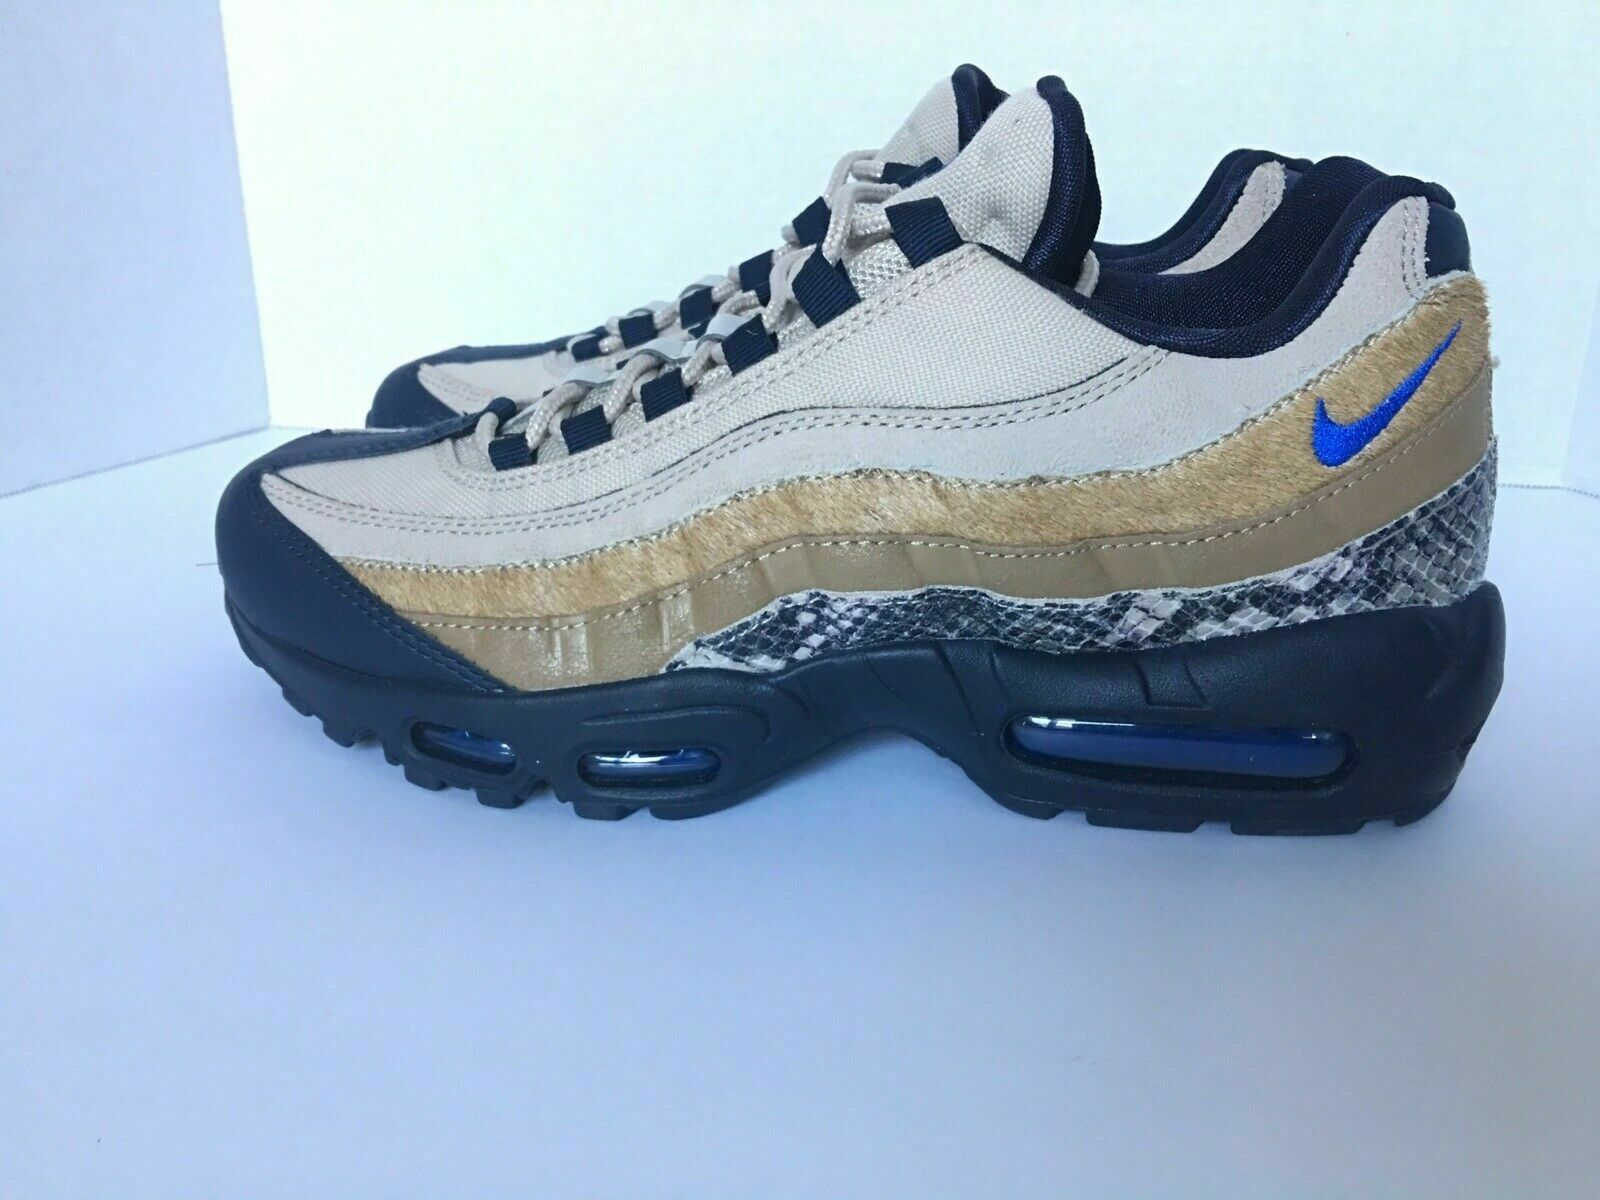 Nike Air Max 95 Newsprint bluee Hero-String Snakeskin AT6152 001 Size 10.5 in box